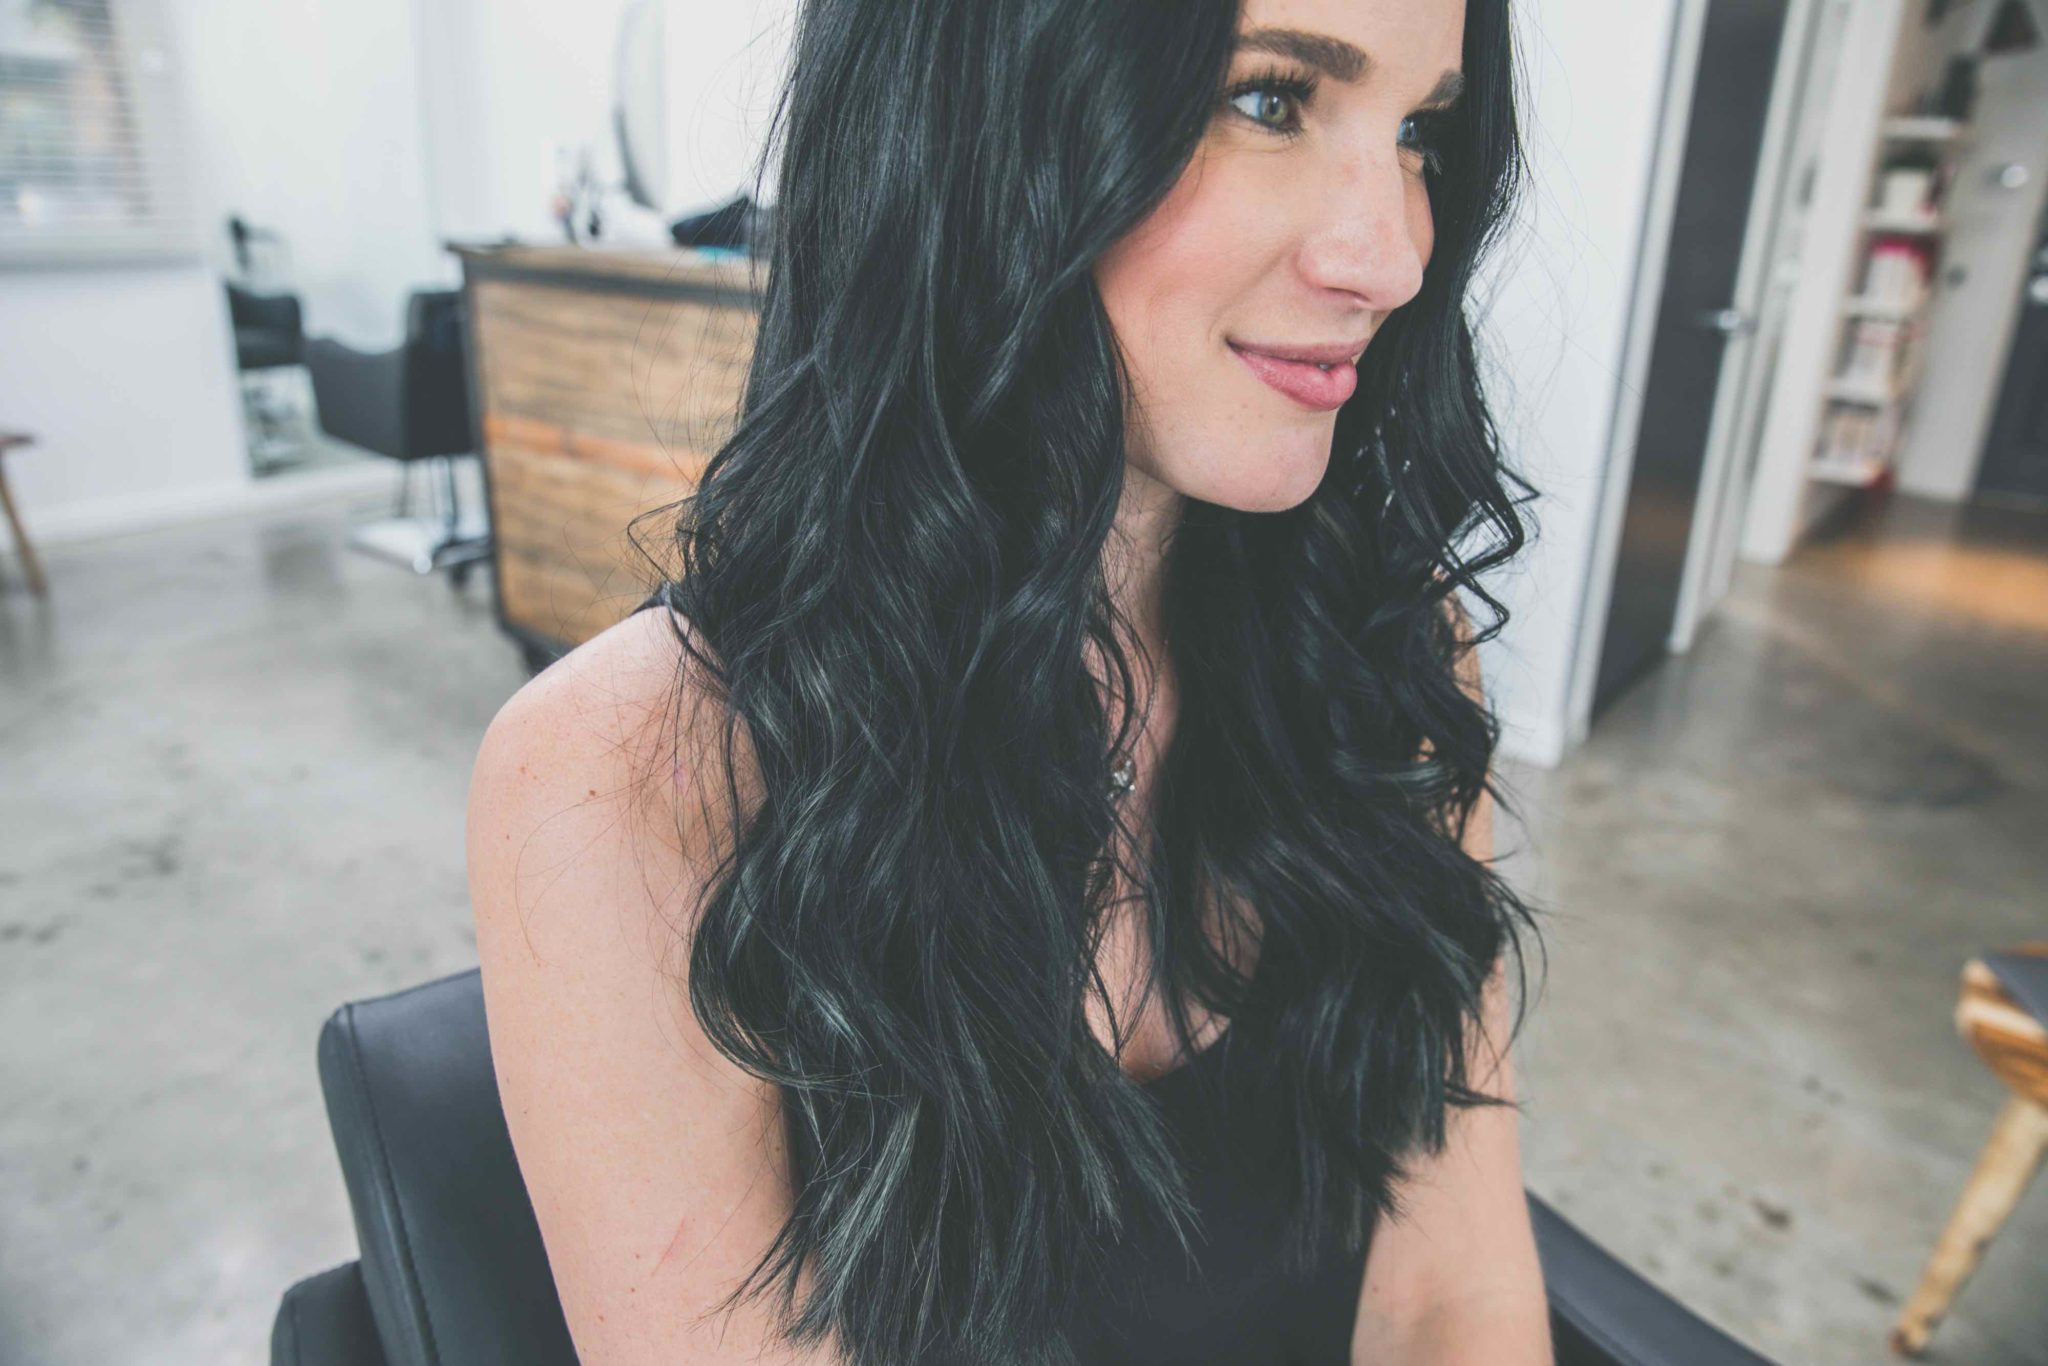 DTKAustin shows a tutorial on the best hair extensions for fine hair, Natural Beaded Rows.   Best Hair Extensions for Fine Hair   Natural Beaded Rows Tutorial and Review   hair extensions for fine hair   hair extension tutorial   how to add hair extensions   hair tips and tutorials   beauty tips and tutorials    Dressed to Kill #hairextensions #beautytips #hairtips #hairextensiontips